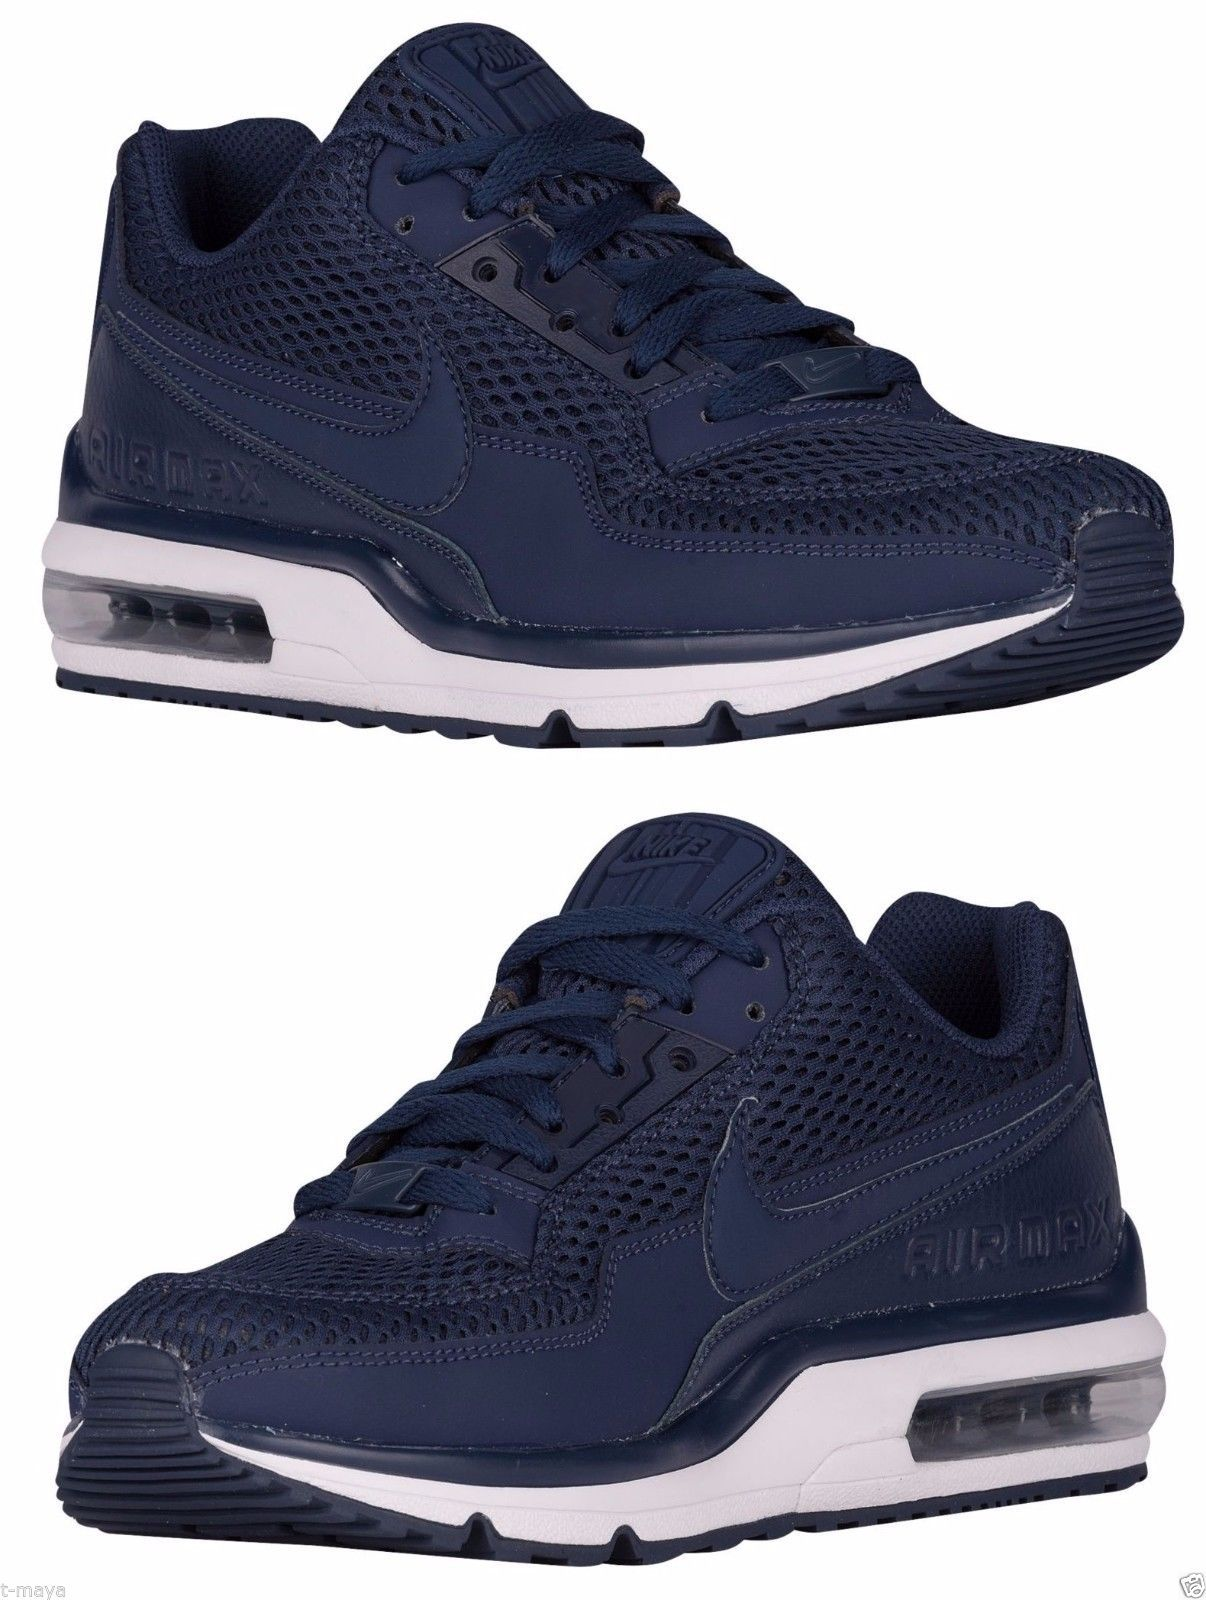 air max ltd 3 release date cheap   OFF58% The Largest Catalog Discounts 55d963ada8373